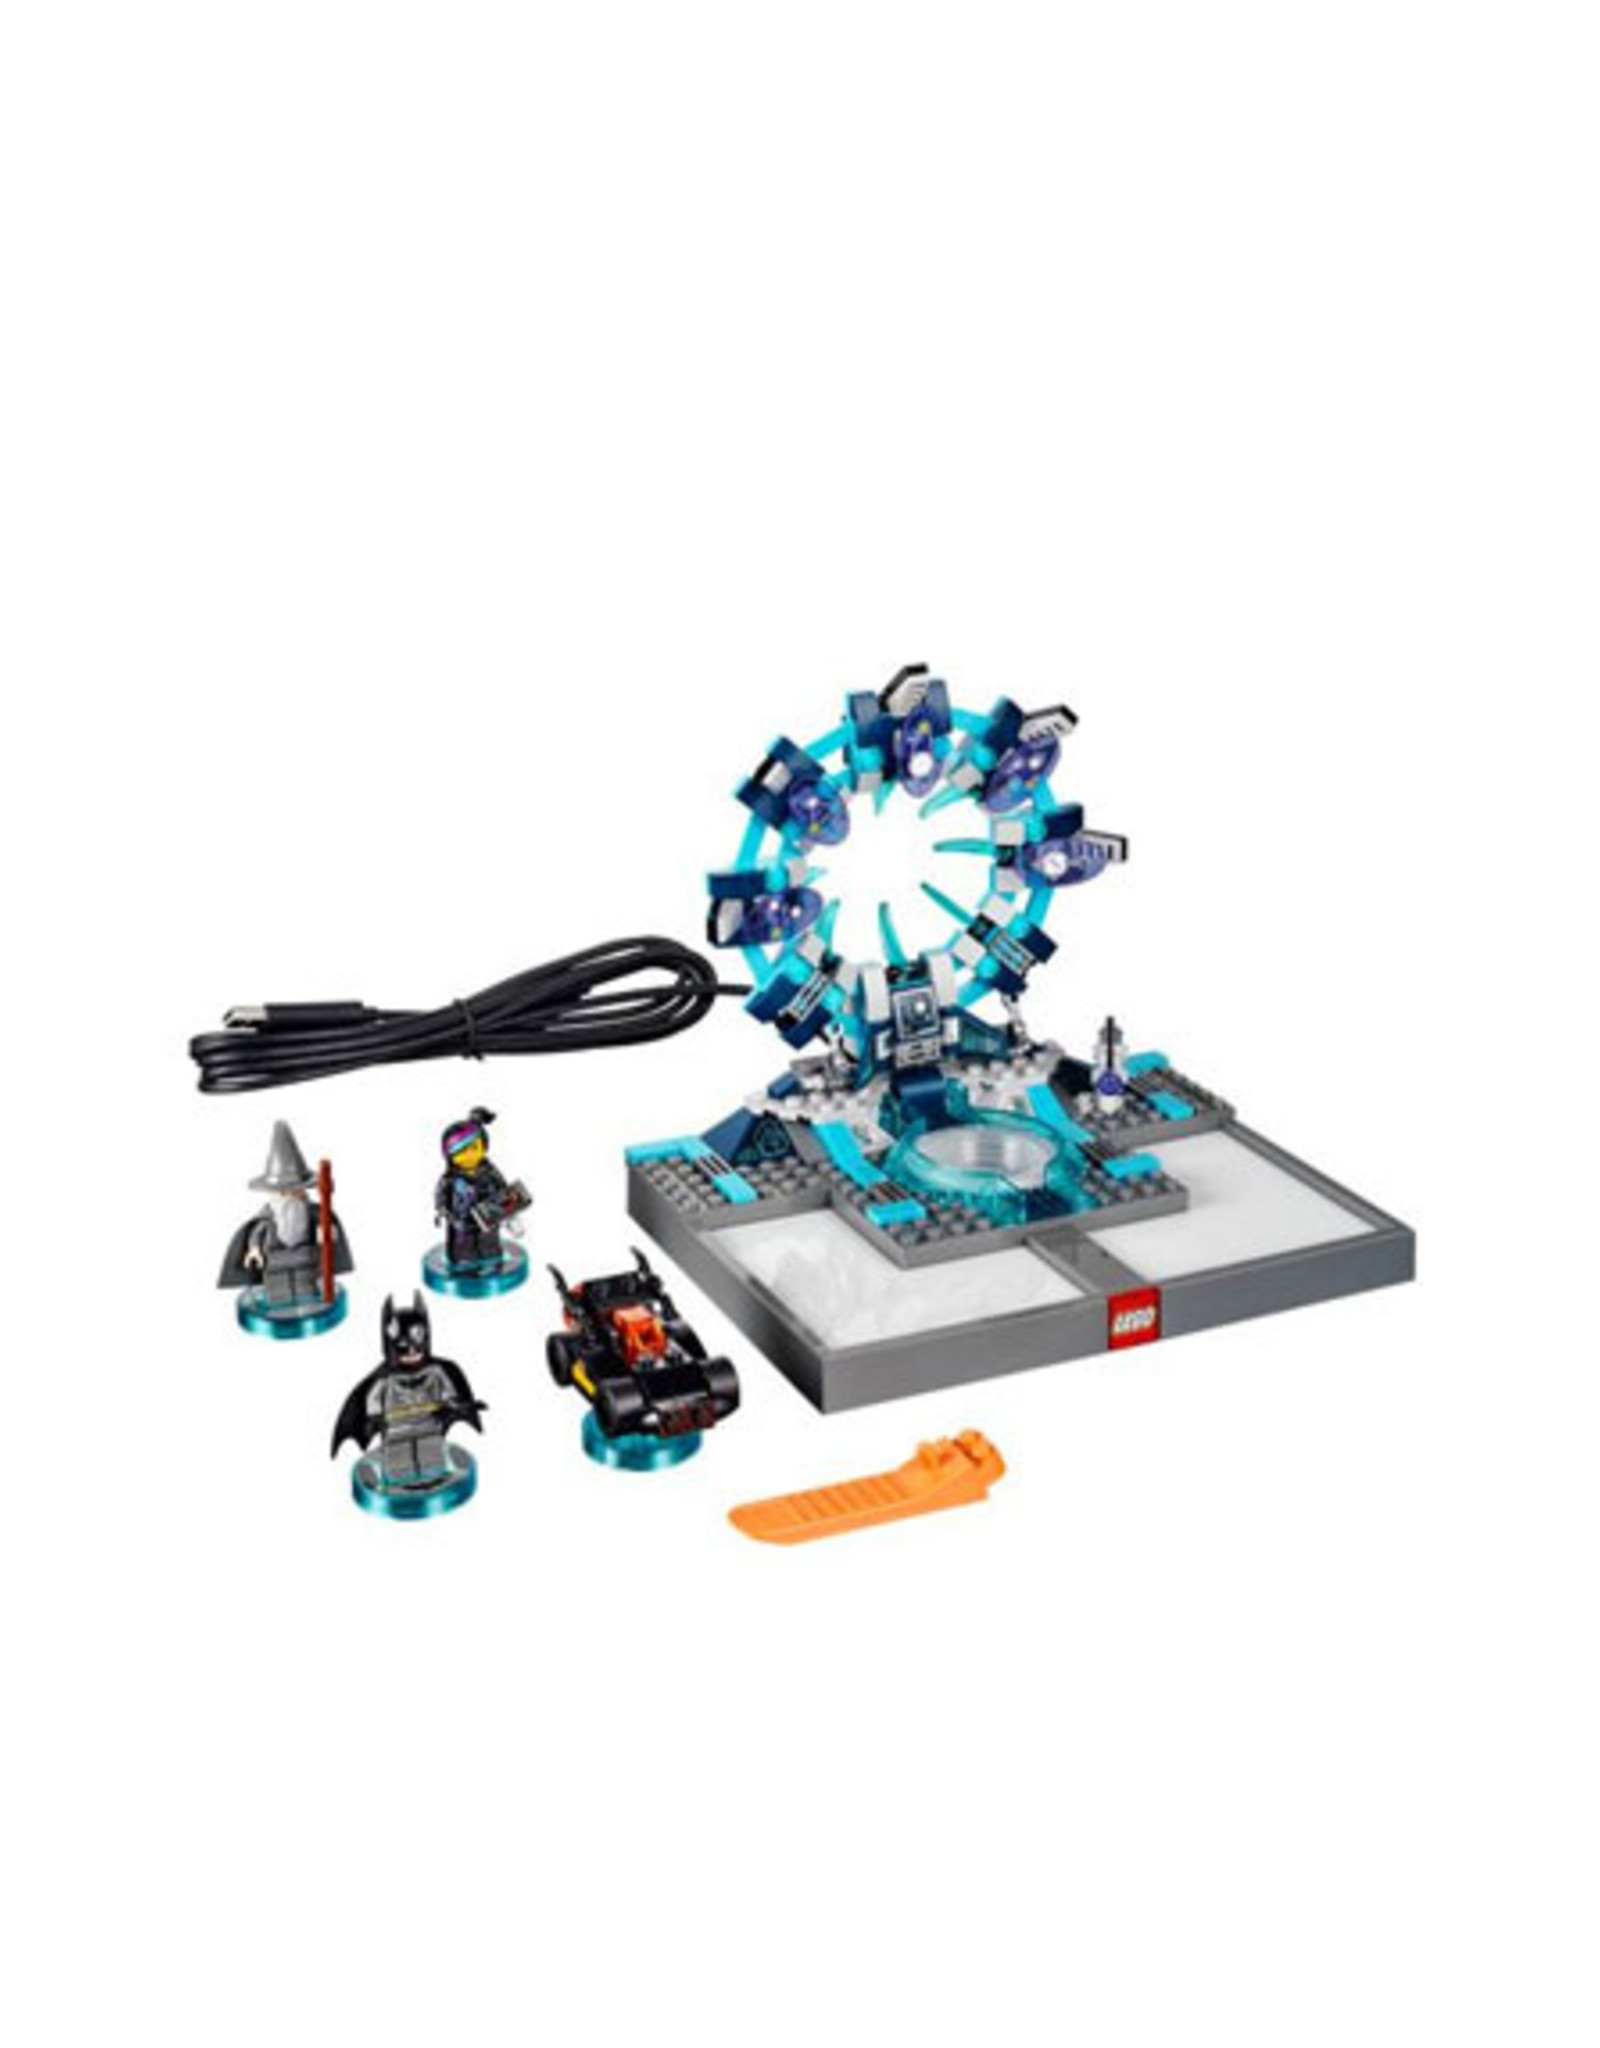 LEGO LEGO 71170  Starter Pack - PlayStation 3 (PS3) Dimensions